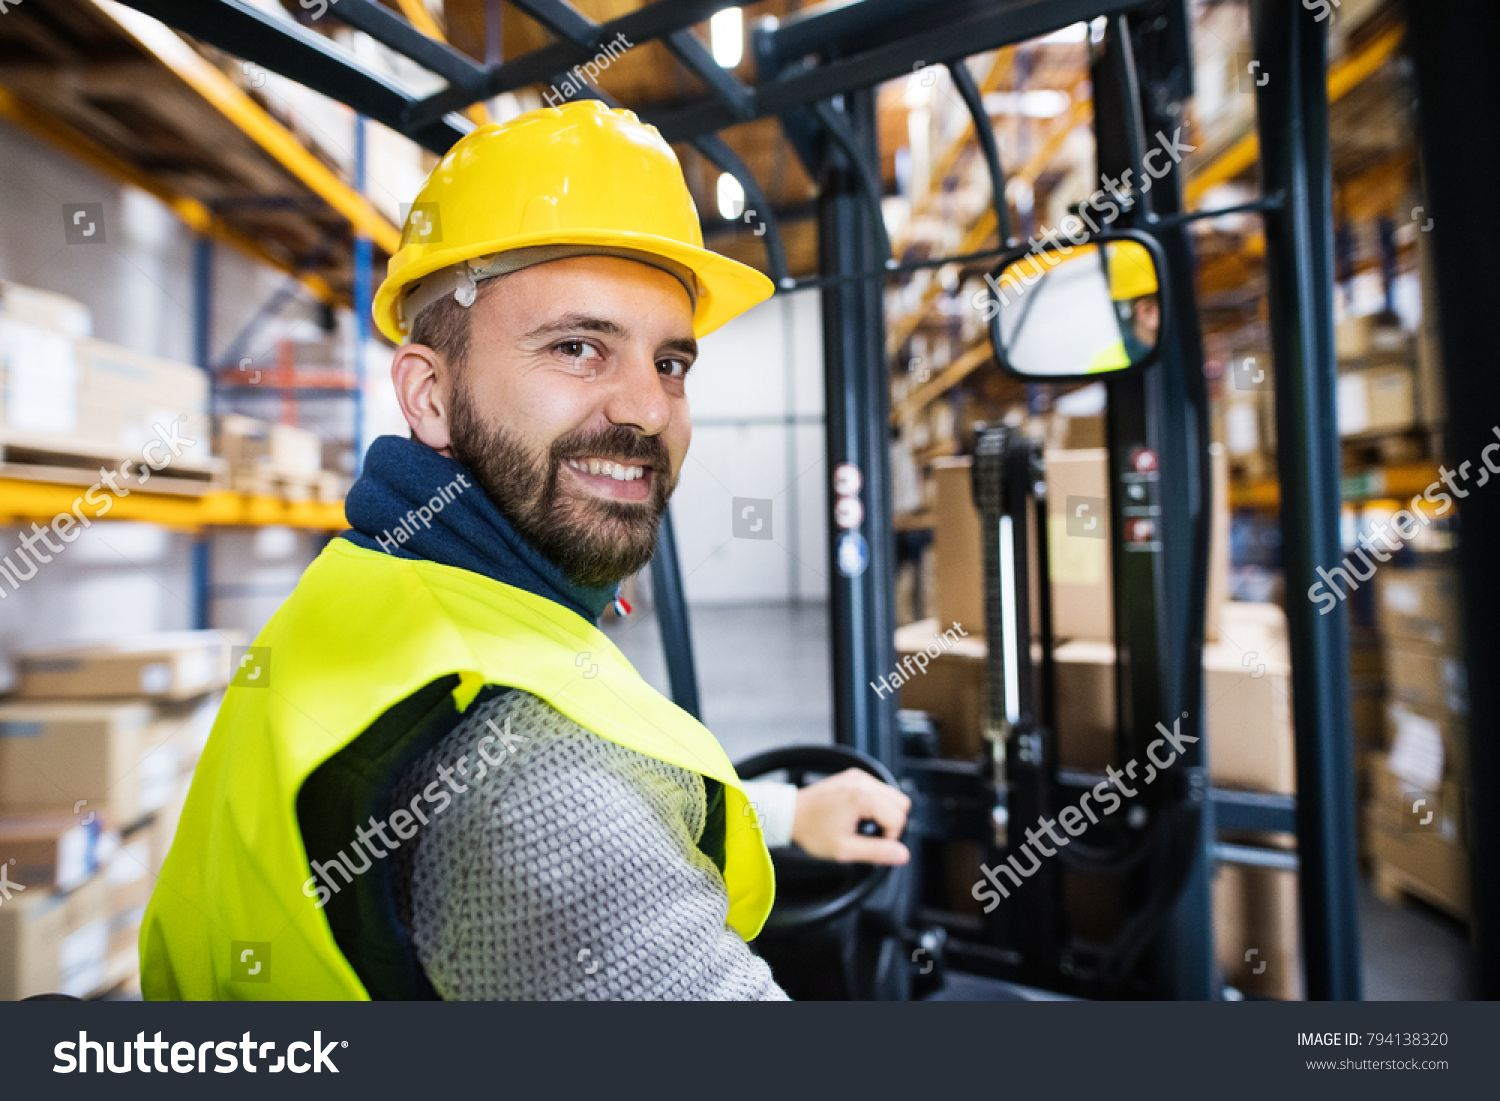 Warehouse man worker with forklift. Royalty Free image